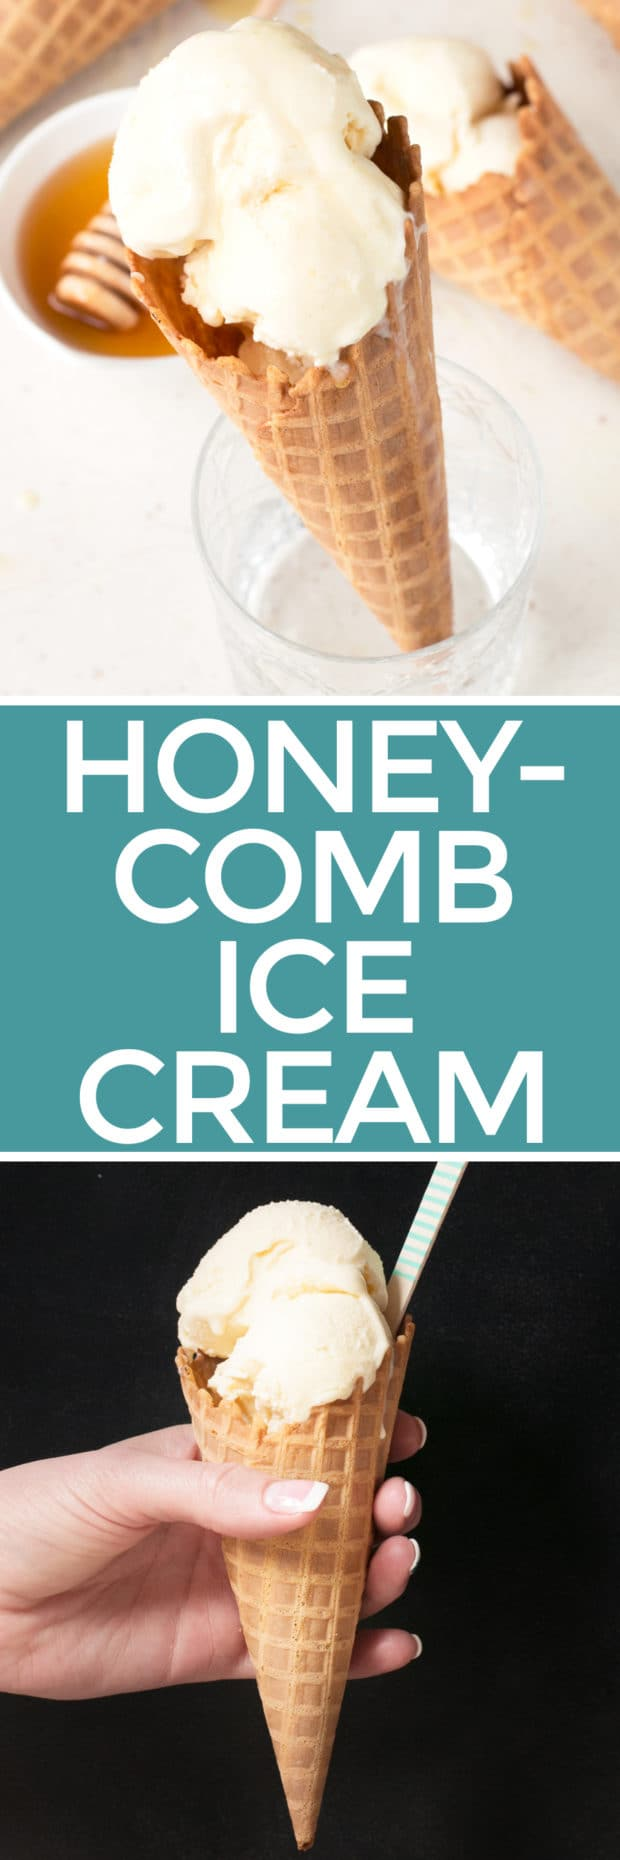 Honeycomb Ice Cream | cakenknife.com #icecream #honey #dessert